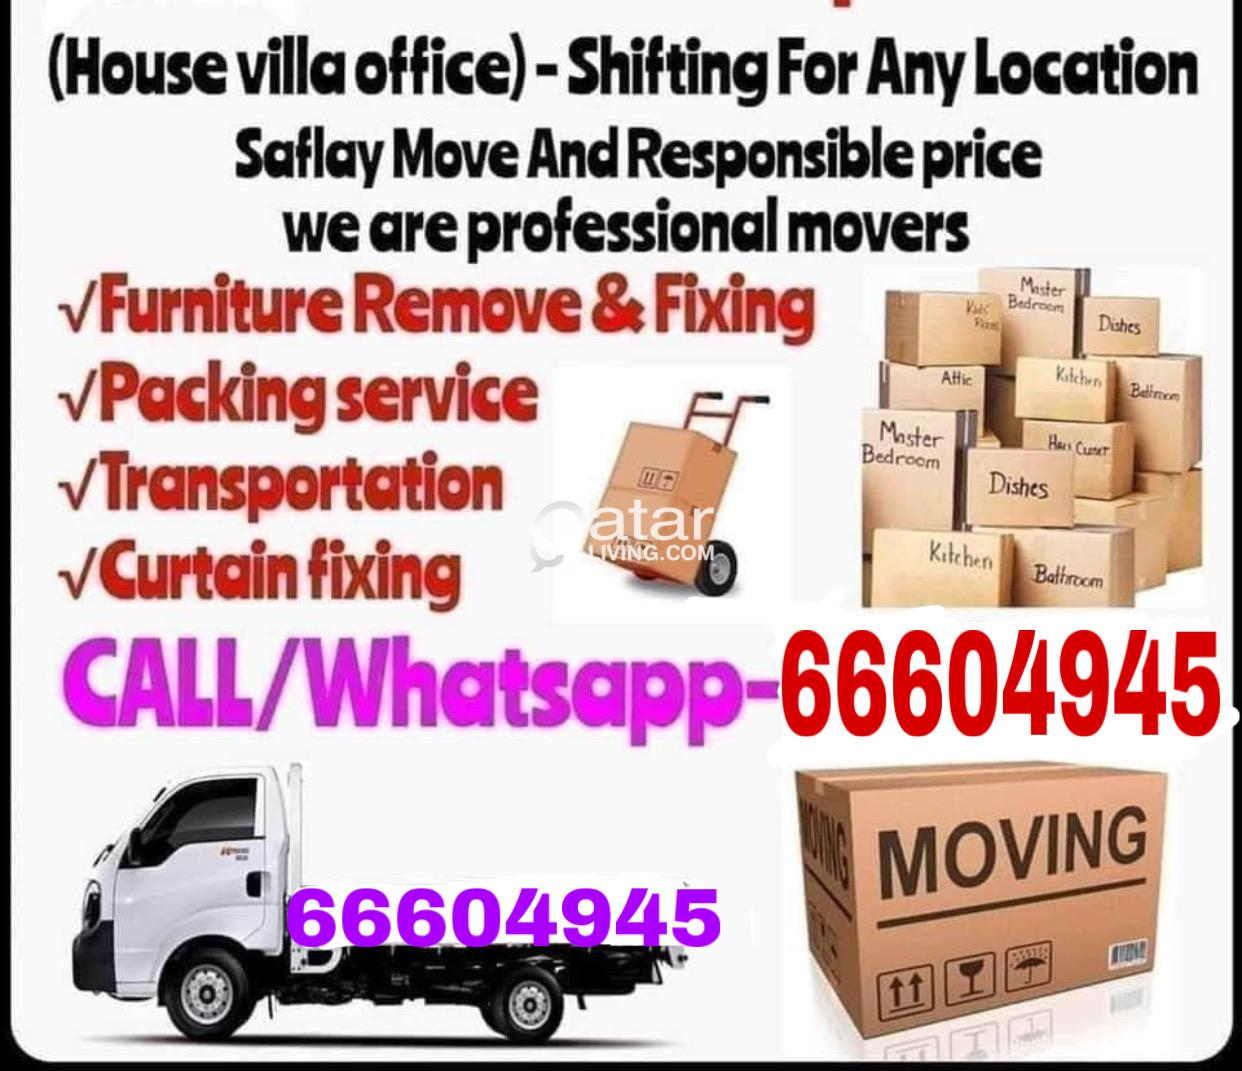 Shifting and moving WhatsApp me 66604945